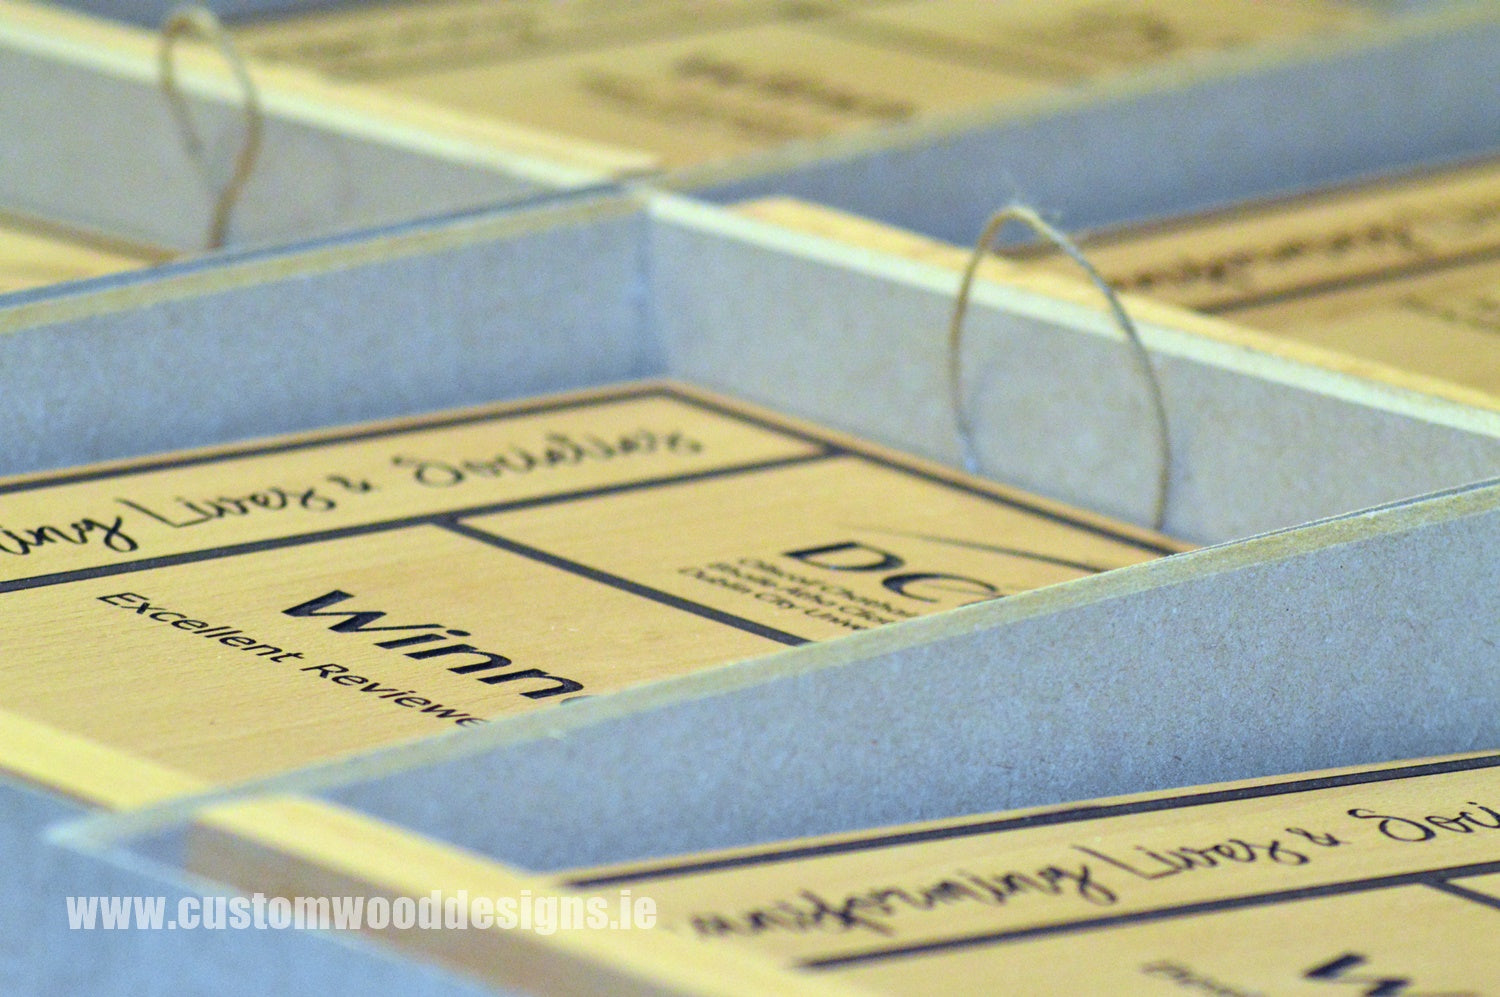 awards mdf boxes manufacturer mdf box maker dublin mdf box maker ireland box maker dublin box maker packaging maker wooden box maker speciality box maker Ireland custom wood designs Ireland sent worldwide beautiful mdf boxes custom wood designs mdf board box maker black mdf boxes maker insert Mdf box maker product drop box maker product activation mdf boxes product boxes maker manufacturer branded mdf boxes laser engraved mdf boxes laser engraved mdf boxes voloured mdf boxes dublin mdf boxes with logo mdf boxes with branding on custom made mdf boxes shipped worldwide exclusive boxes irealdn high end boxes gift mdf boxes present mdf boxes